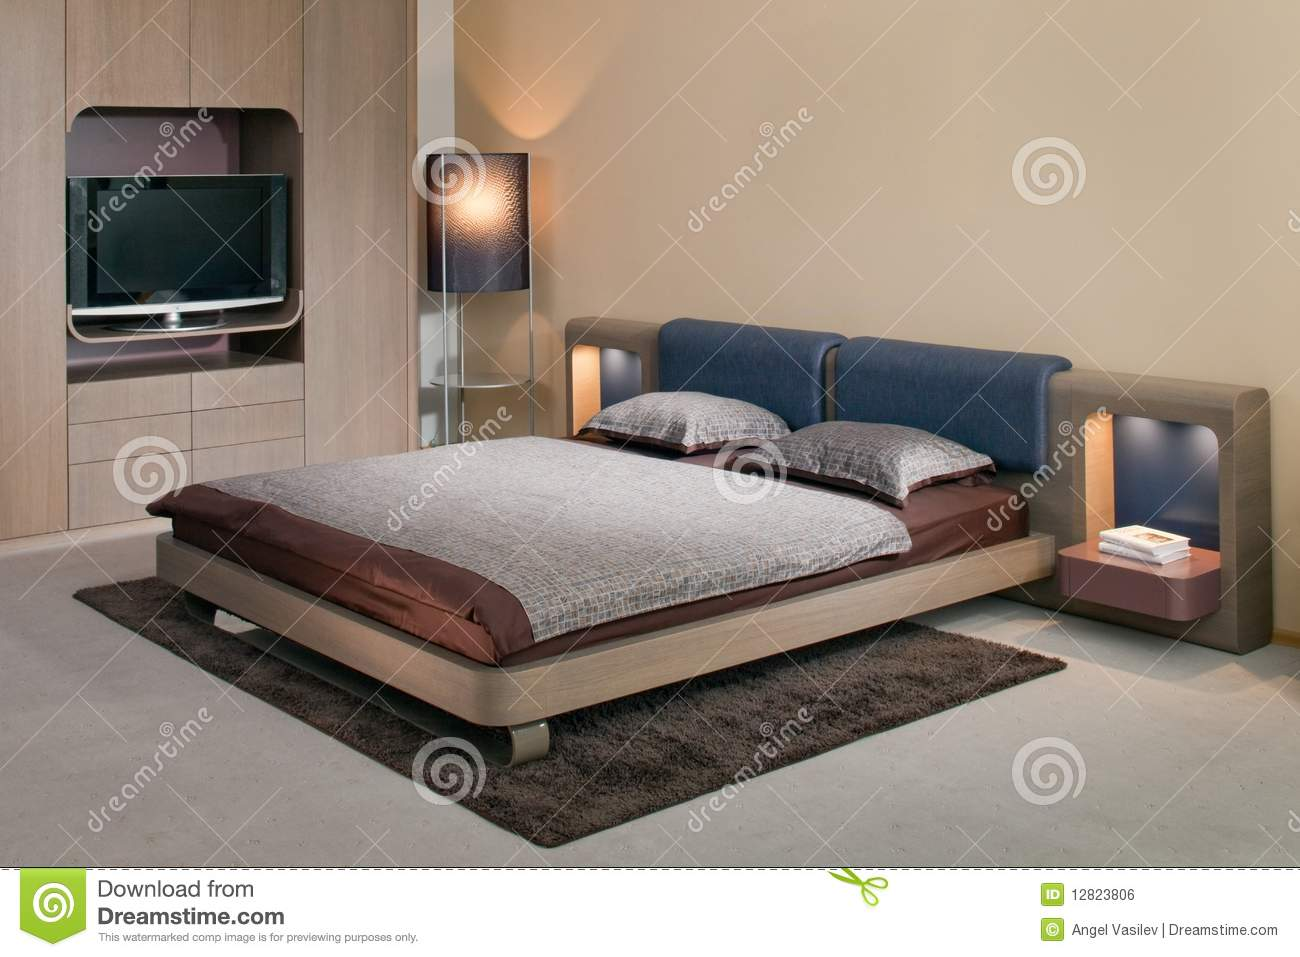 Elegant and luxury bedroom interior design royalty free for Bed room interior design images